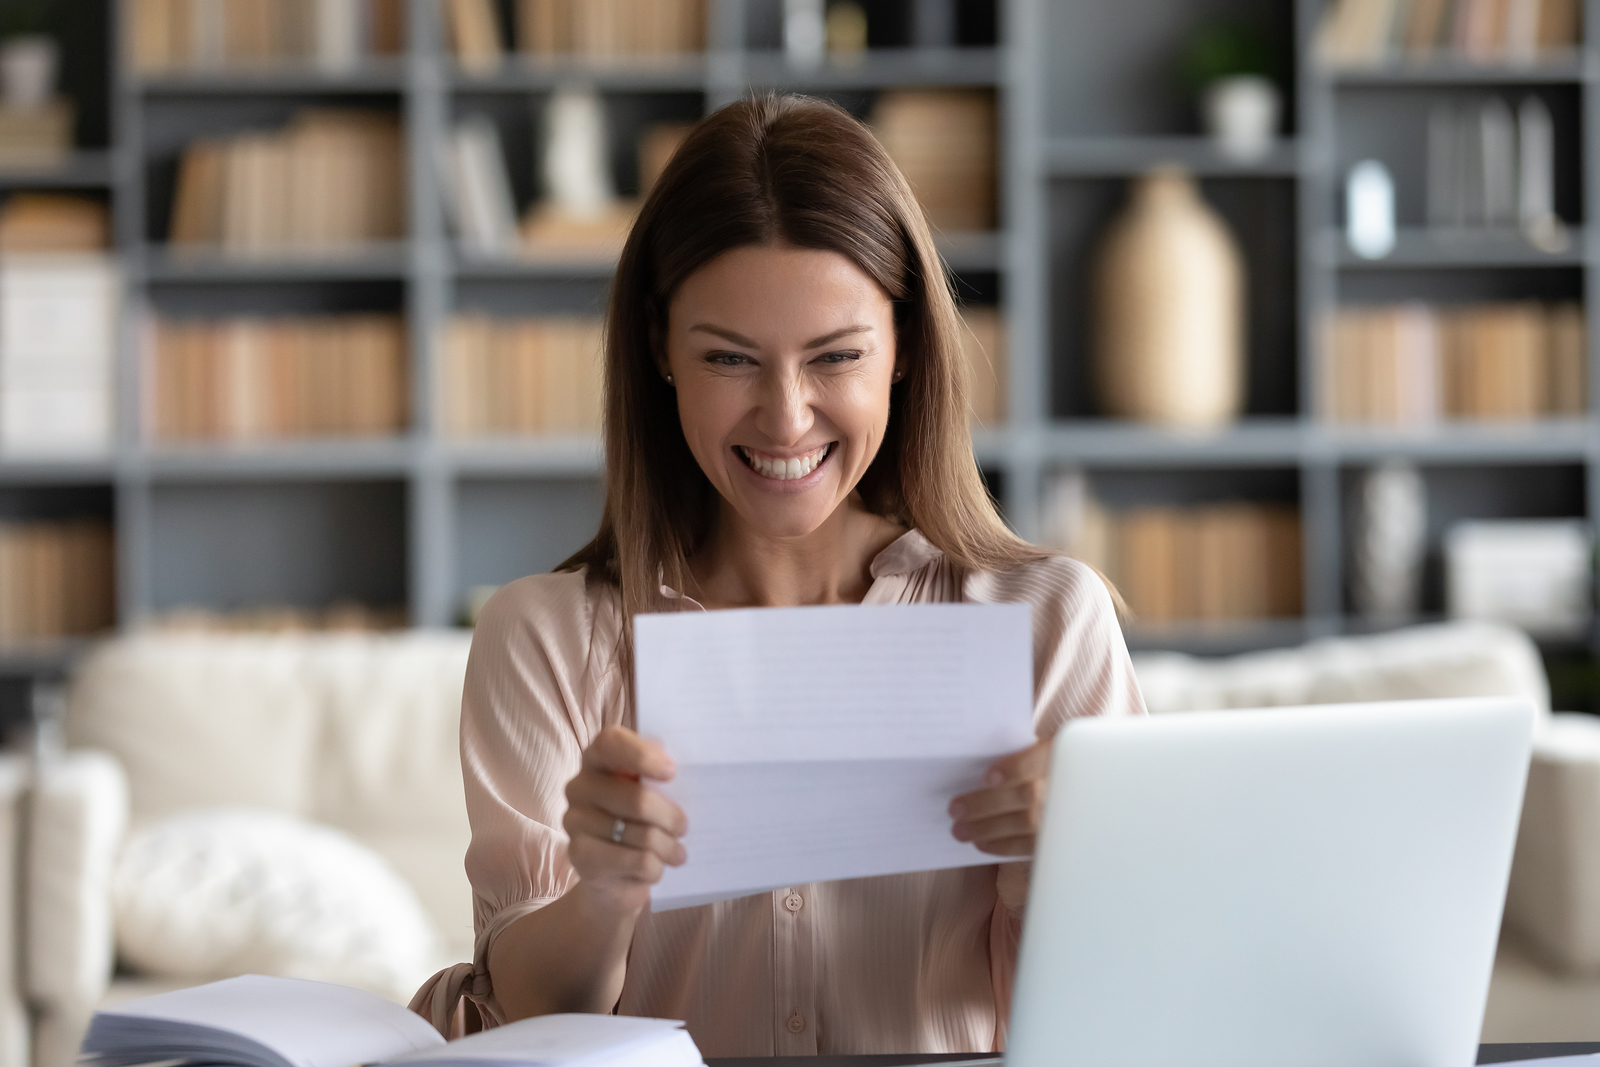 Bad Credit? 5 Things to Do Before Applying for a Loan